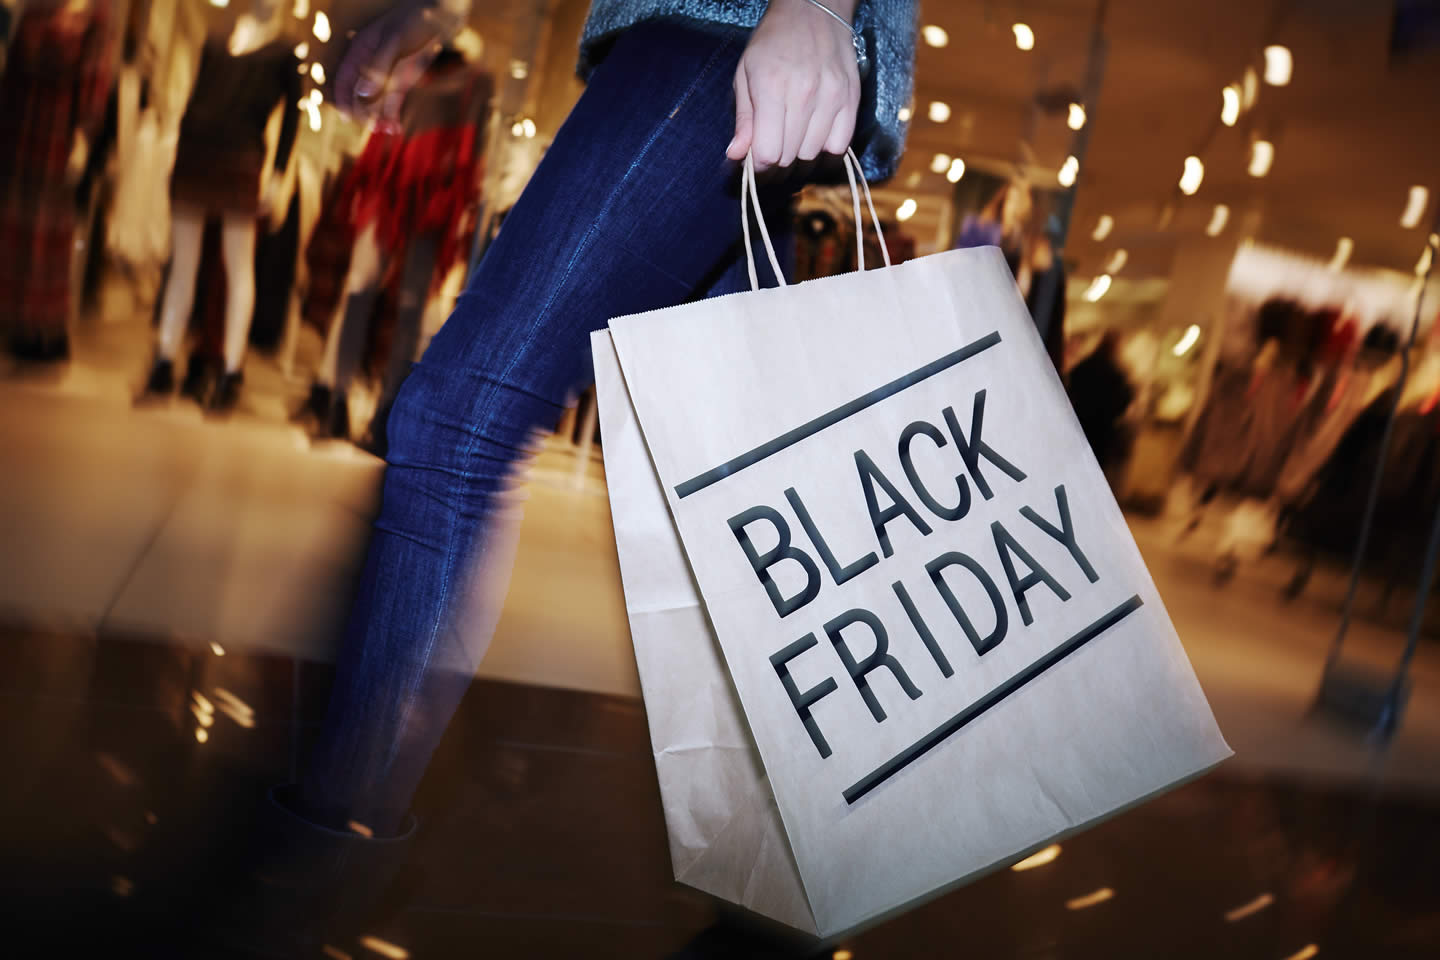 Checklist to Prep for Black Friday and Cyber Monday